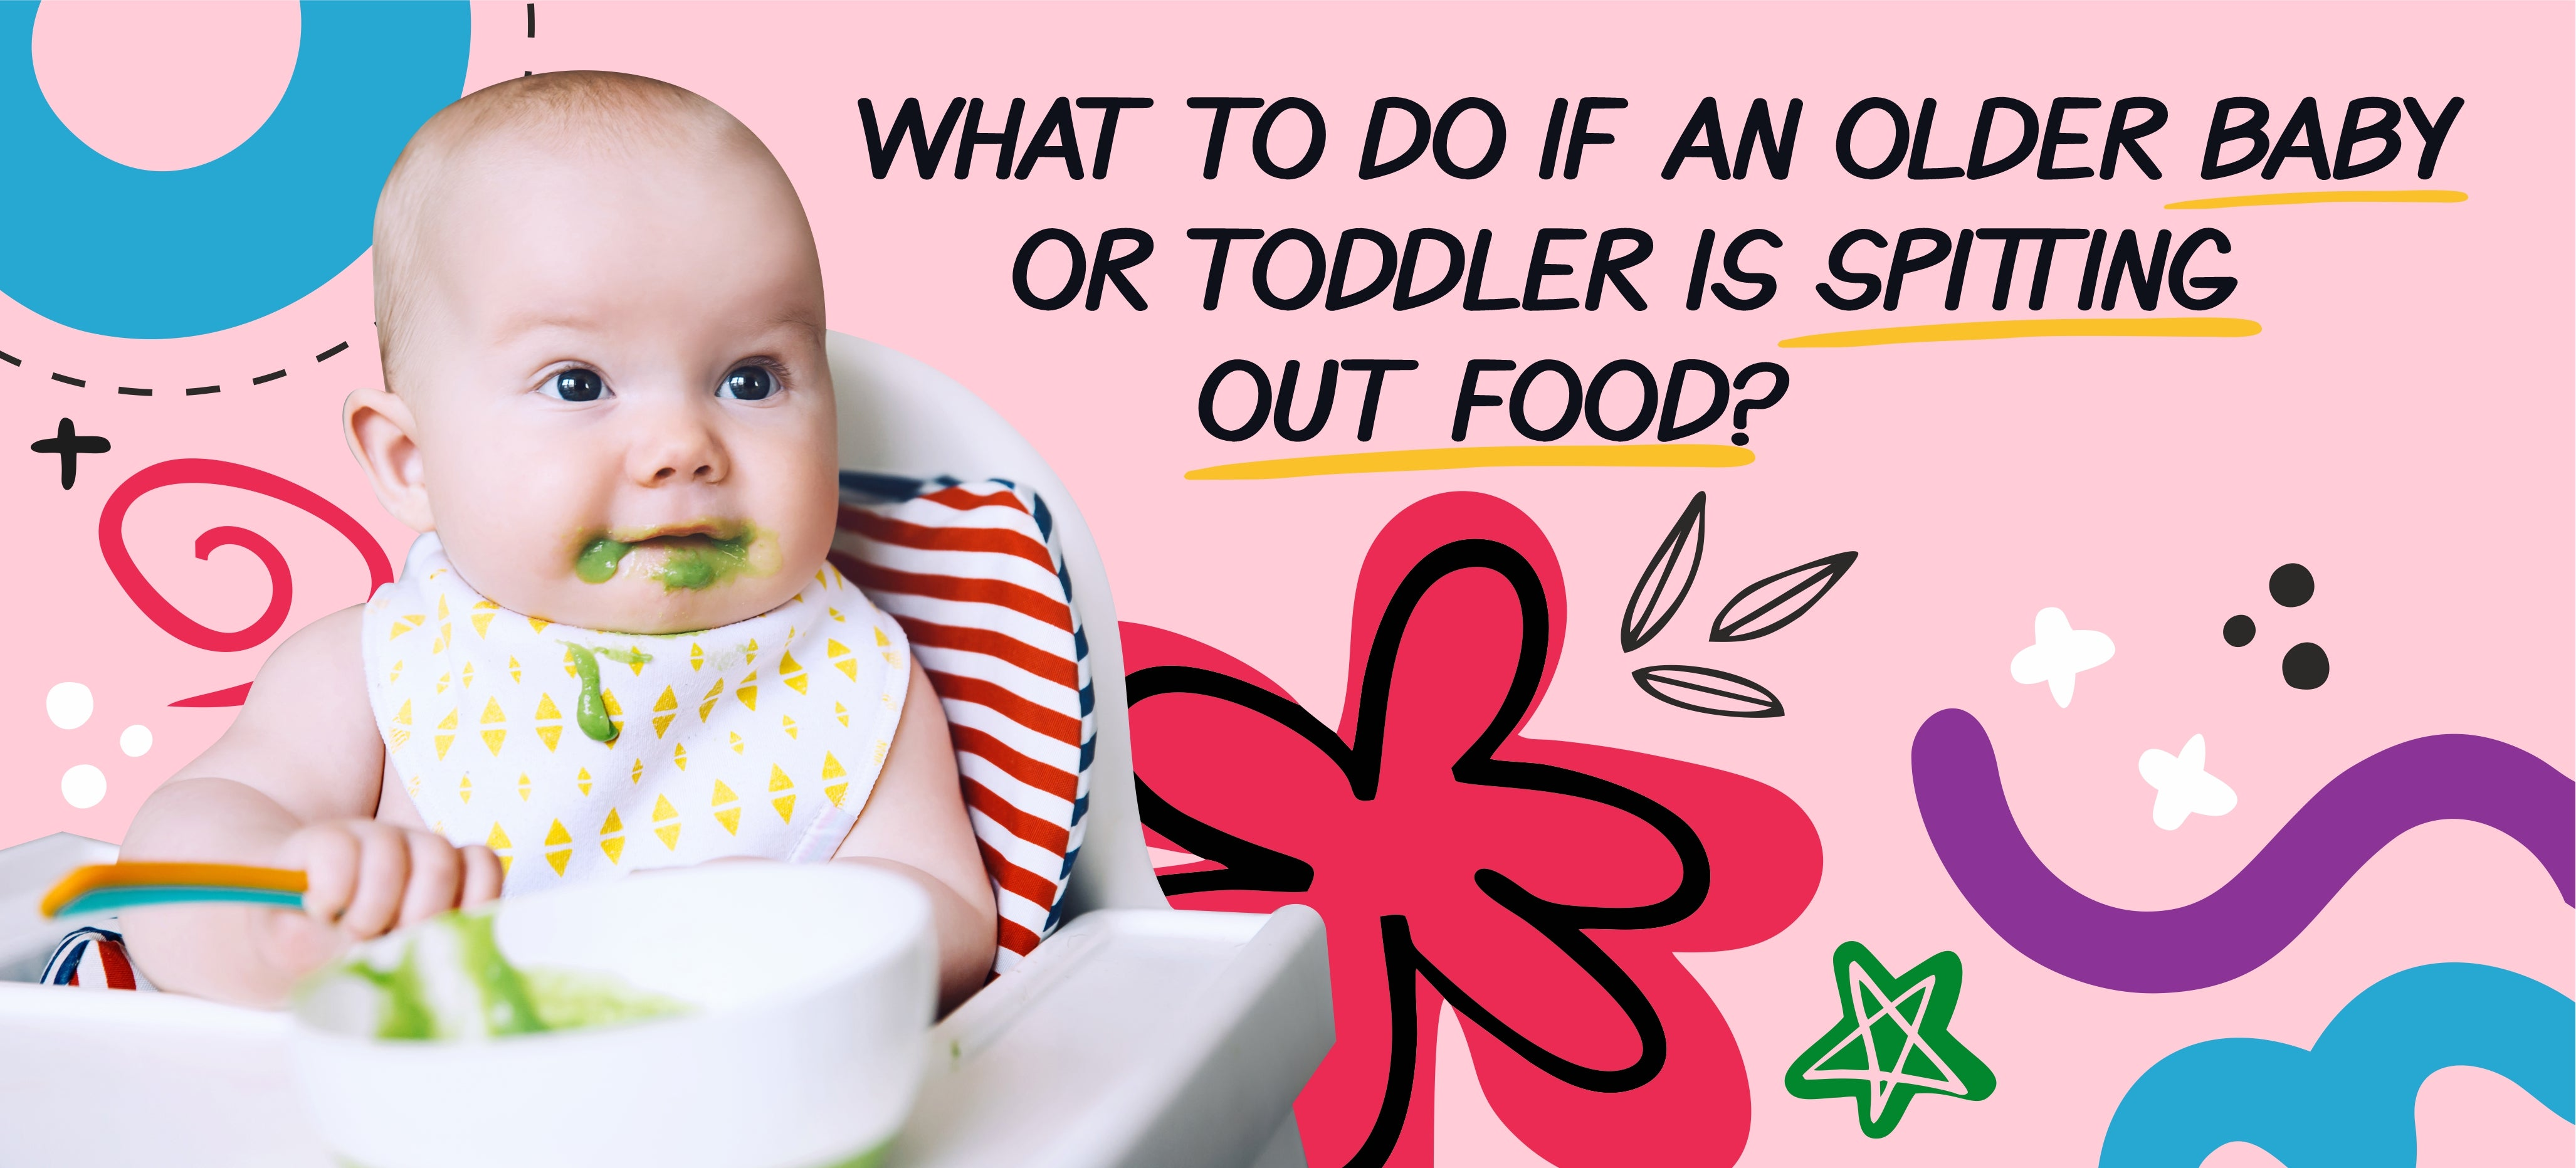 What to do if an older baby or toddler is spitting out food?